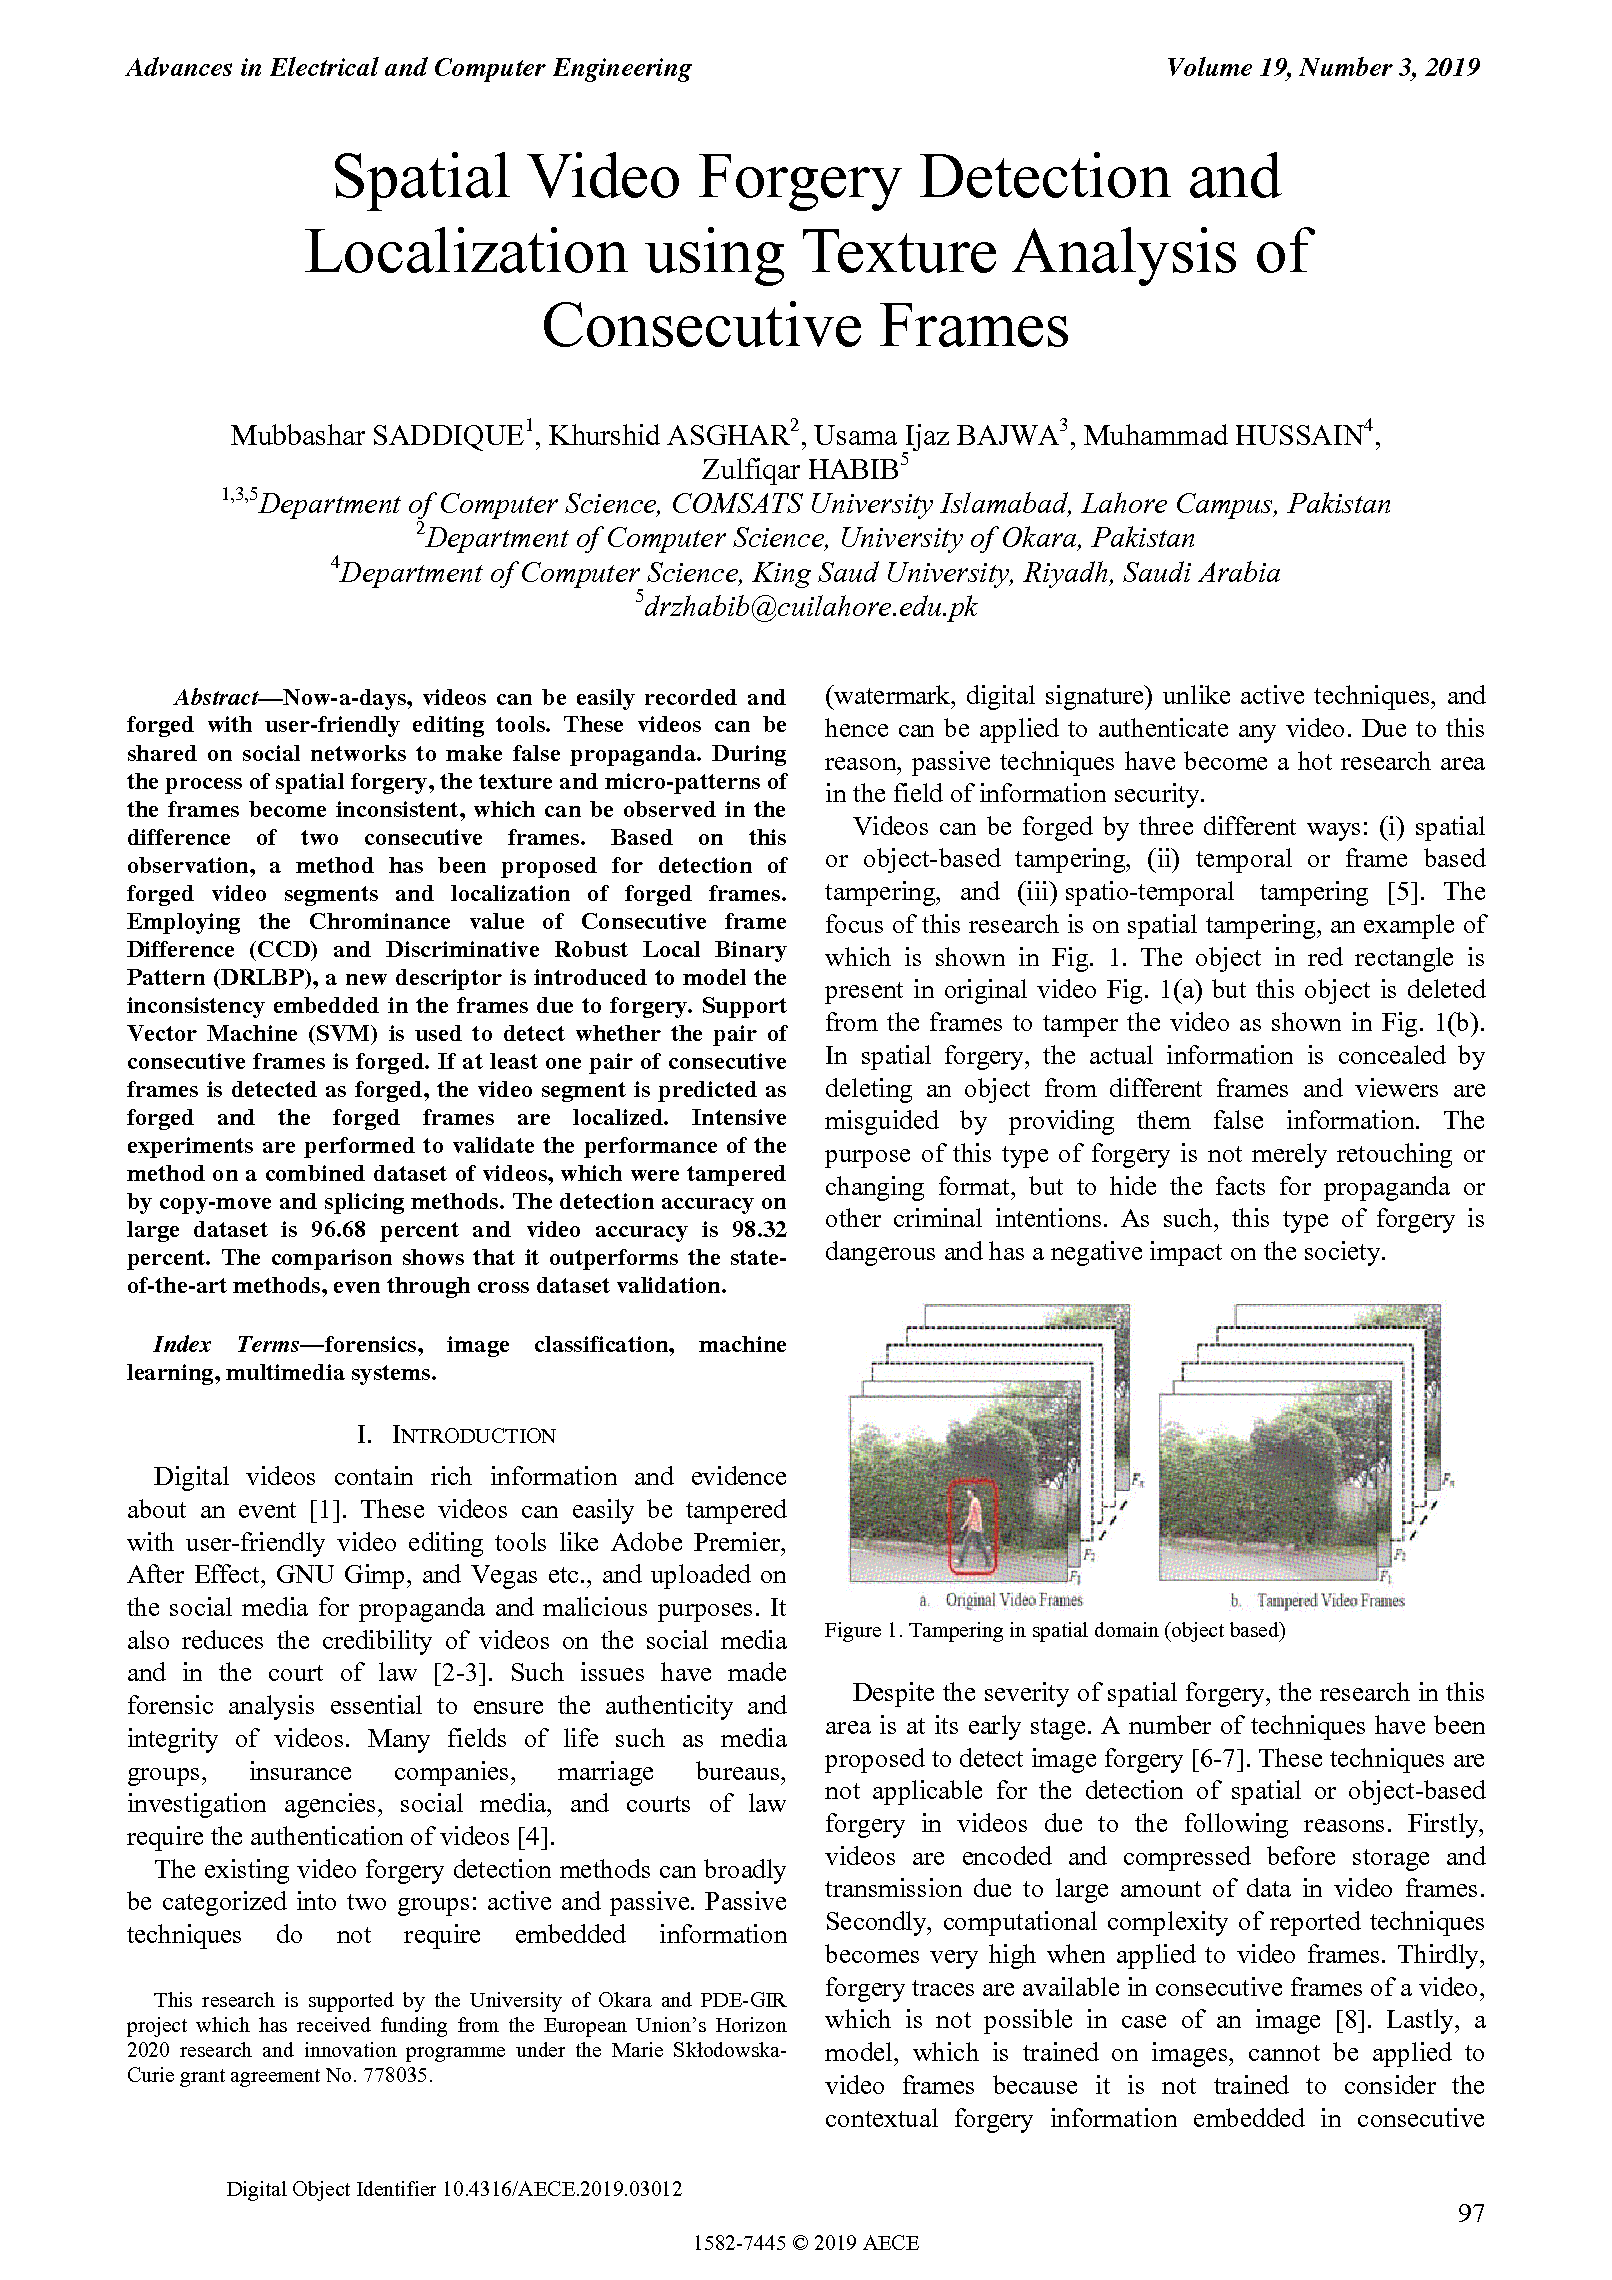 PDF Quickview for paper with DOI:10.4316/AECE.2019.03012